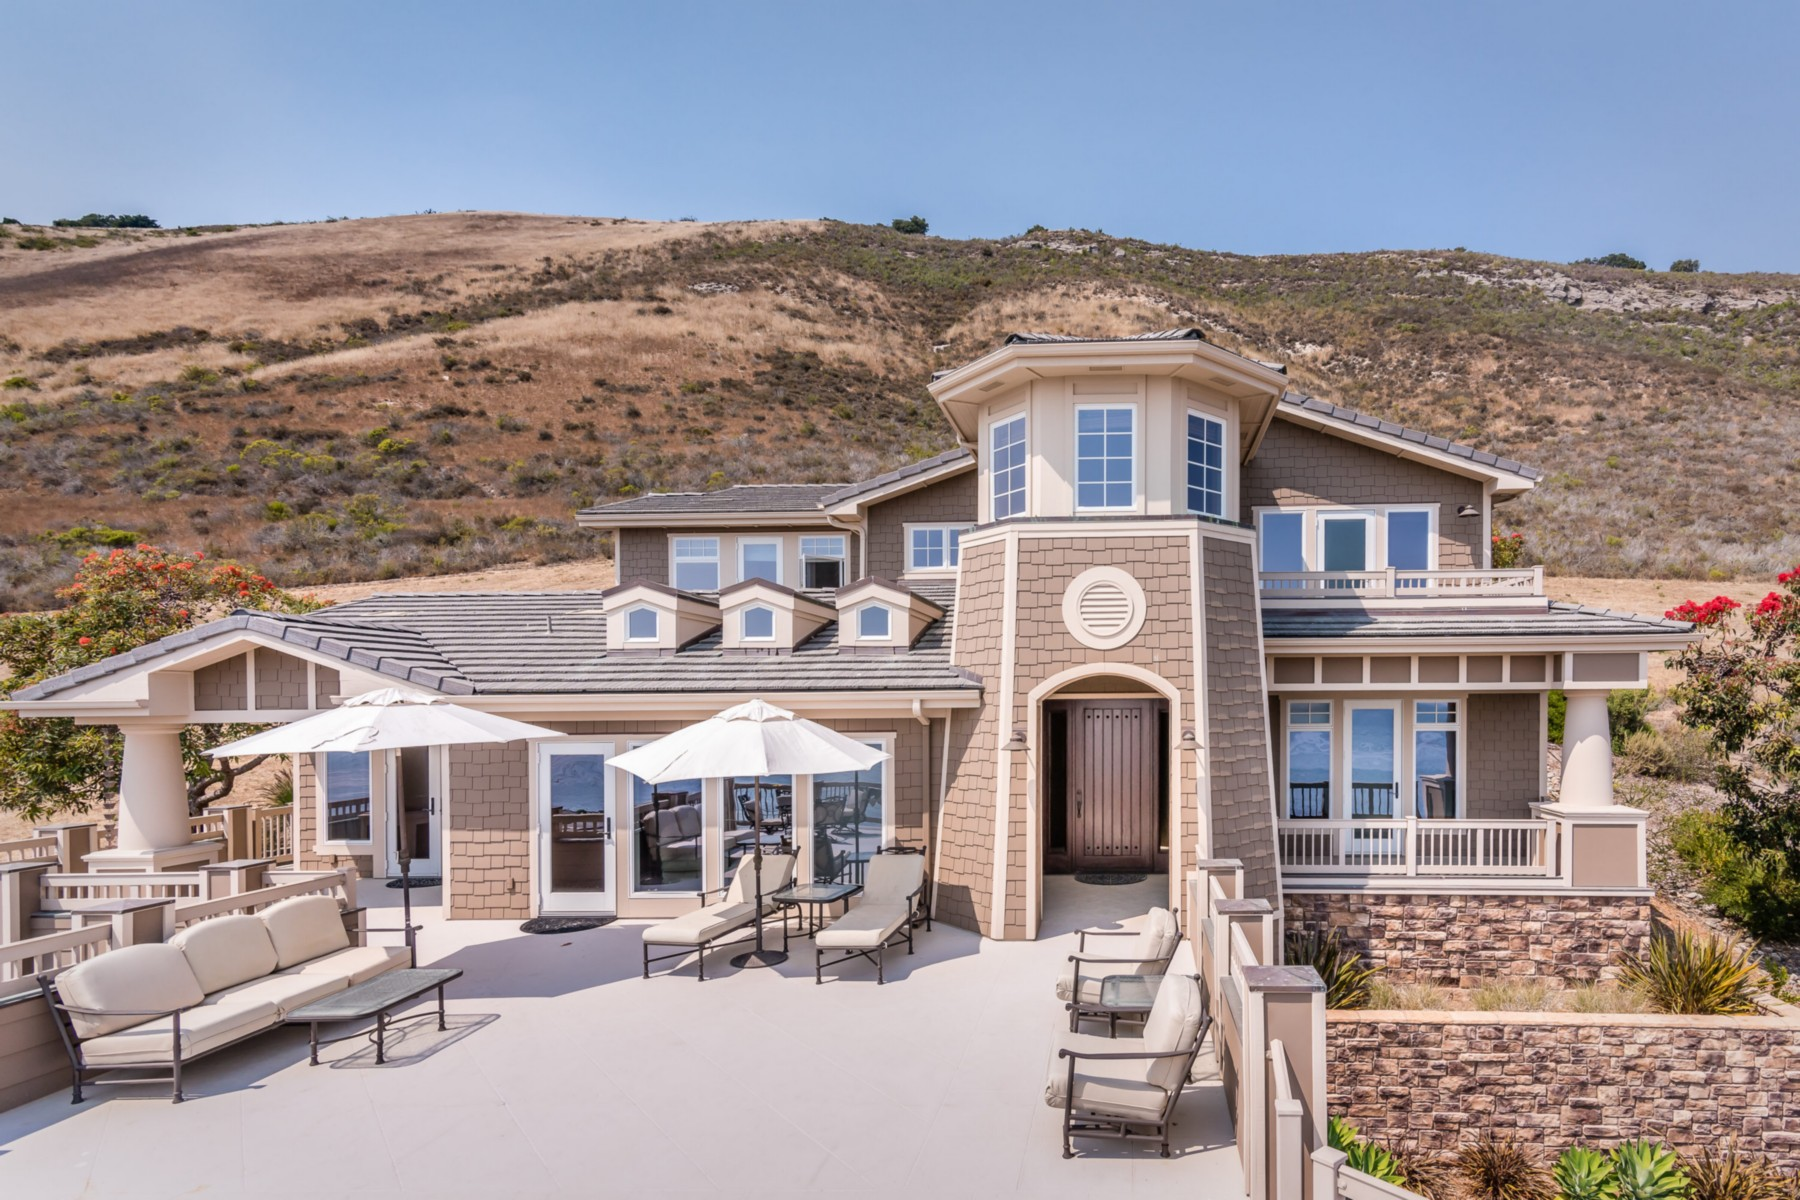 Single Family Home for Sale at Lavish Oceanfront Estate 122 Bluff Dr. Pismo Beach, California 93420 United States